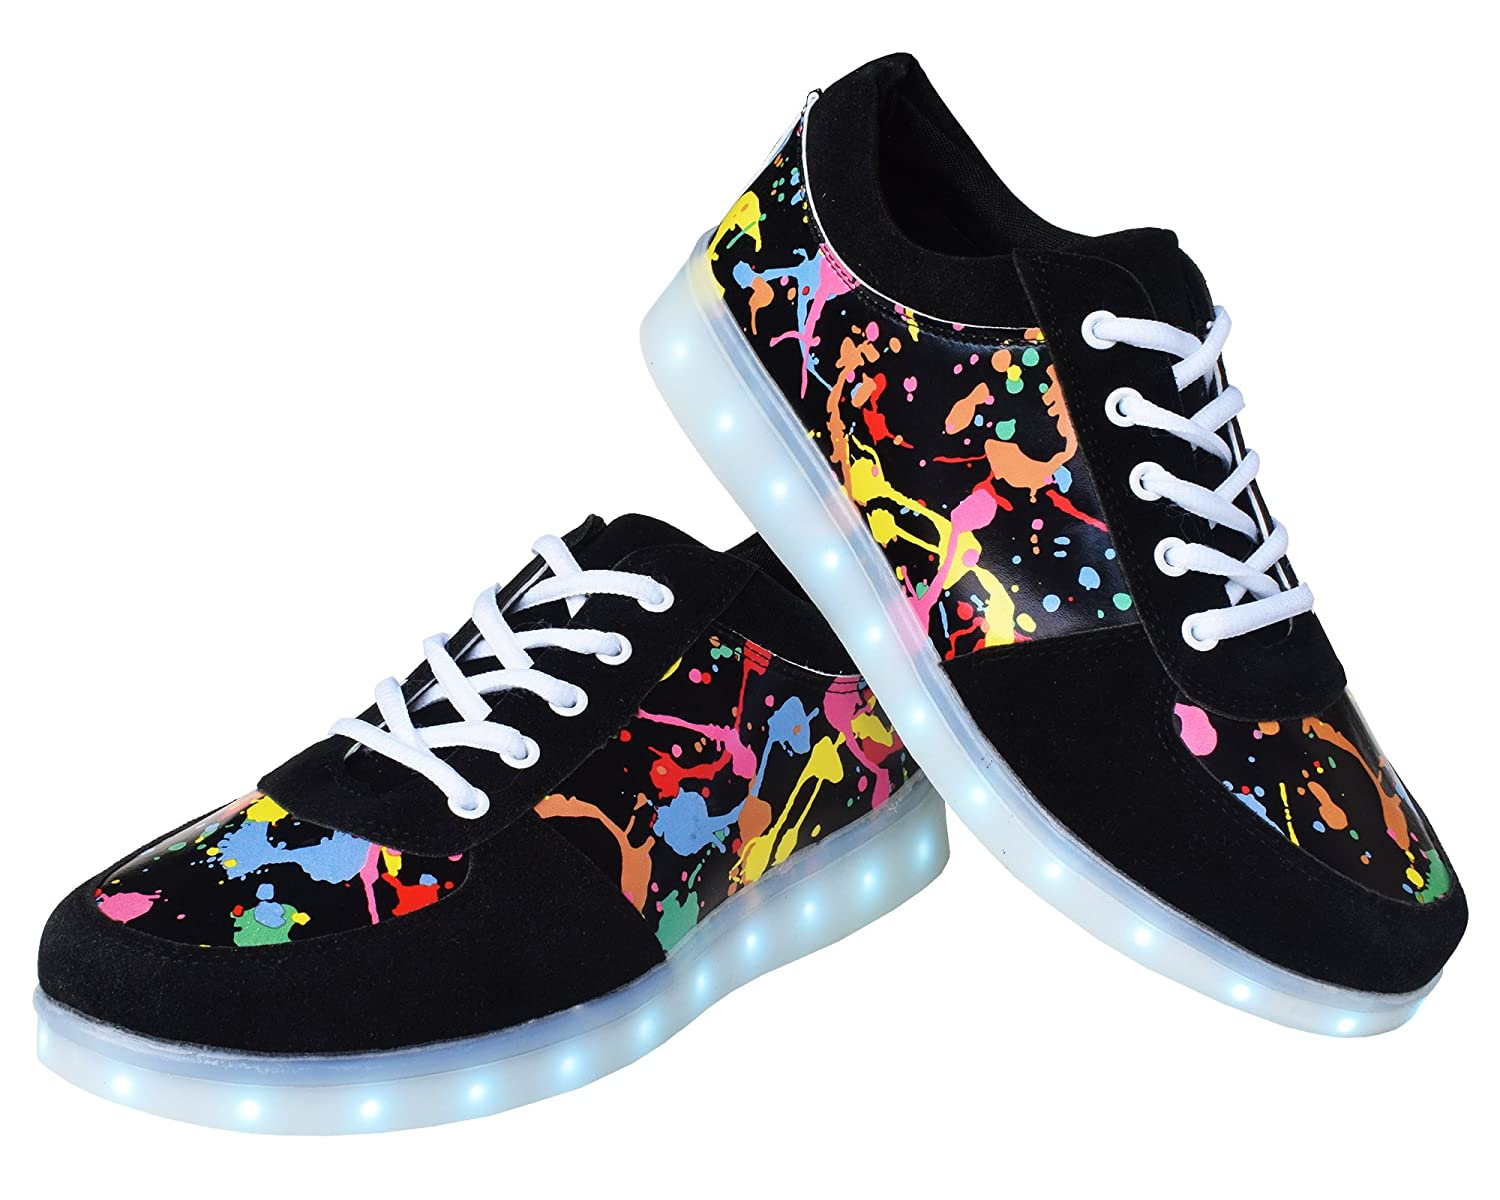 3513eced24ea QOUJEILY Men Women USB Charging LED Light up Shoes Fashion Flashing Sneakers  Graffiti Printing Shoes (5 B(M) US Women 3.5 D(M) US Men